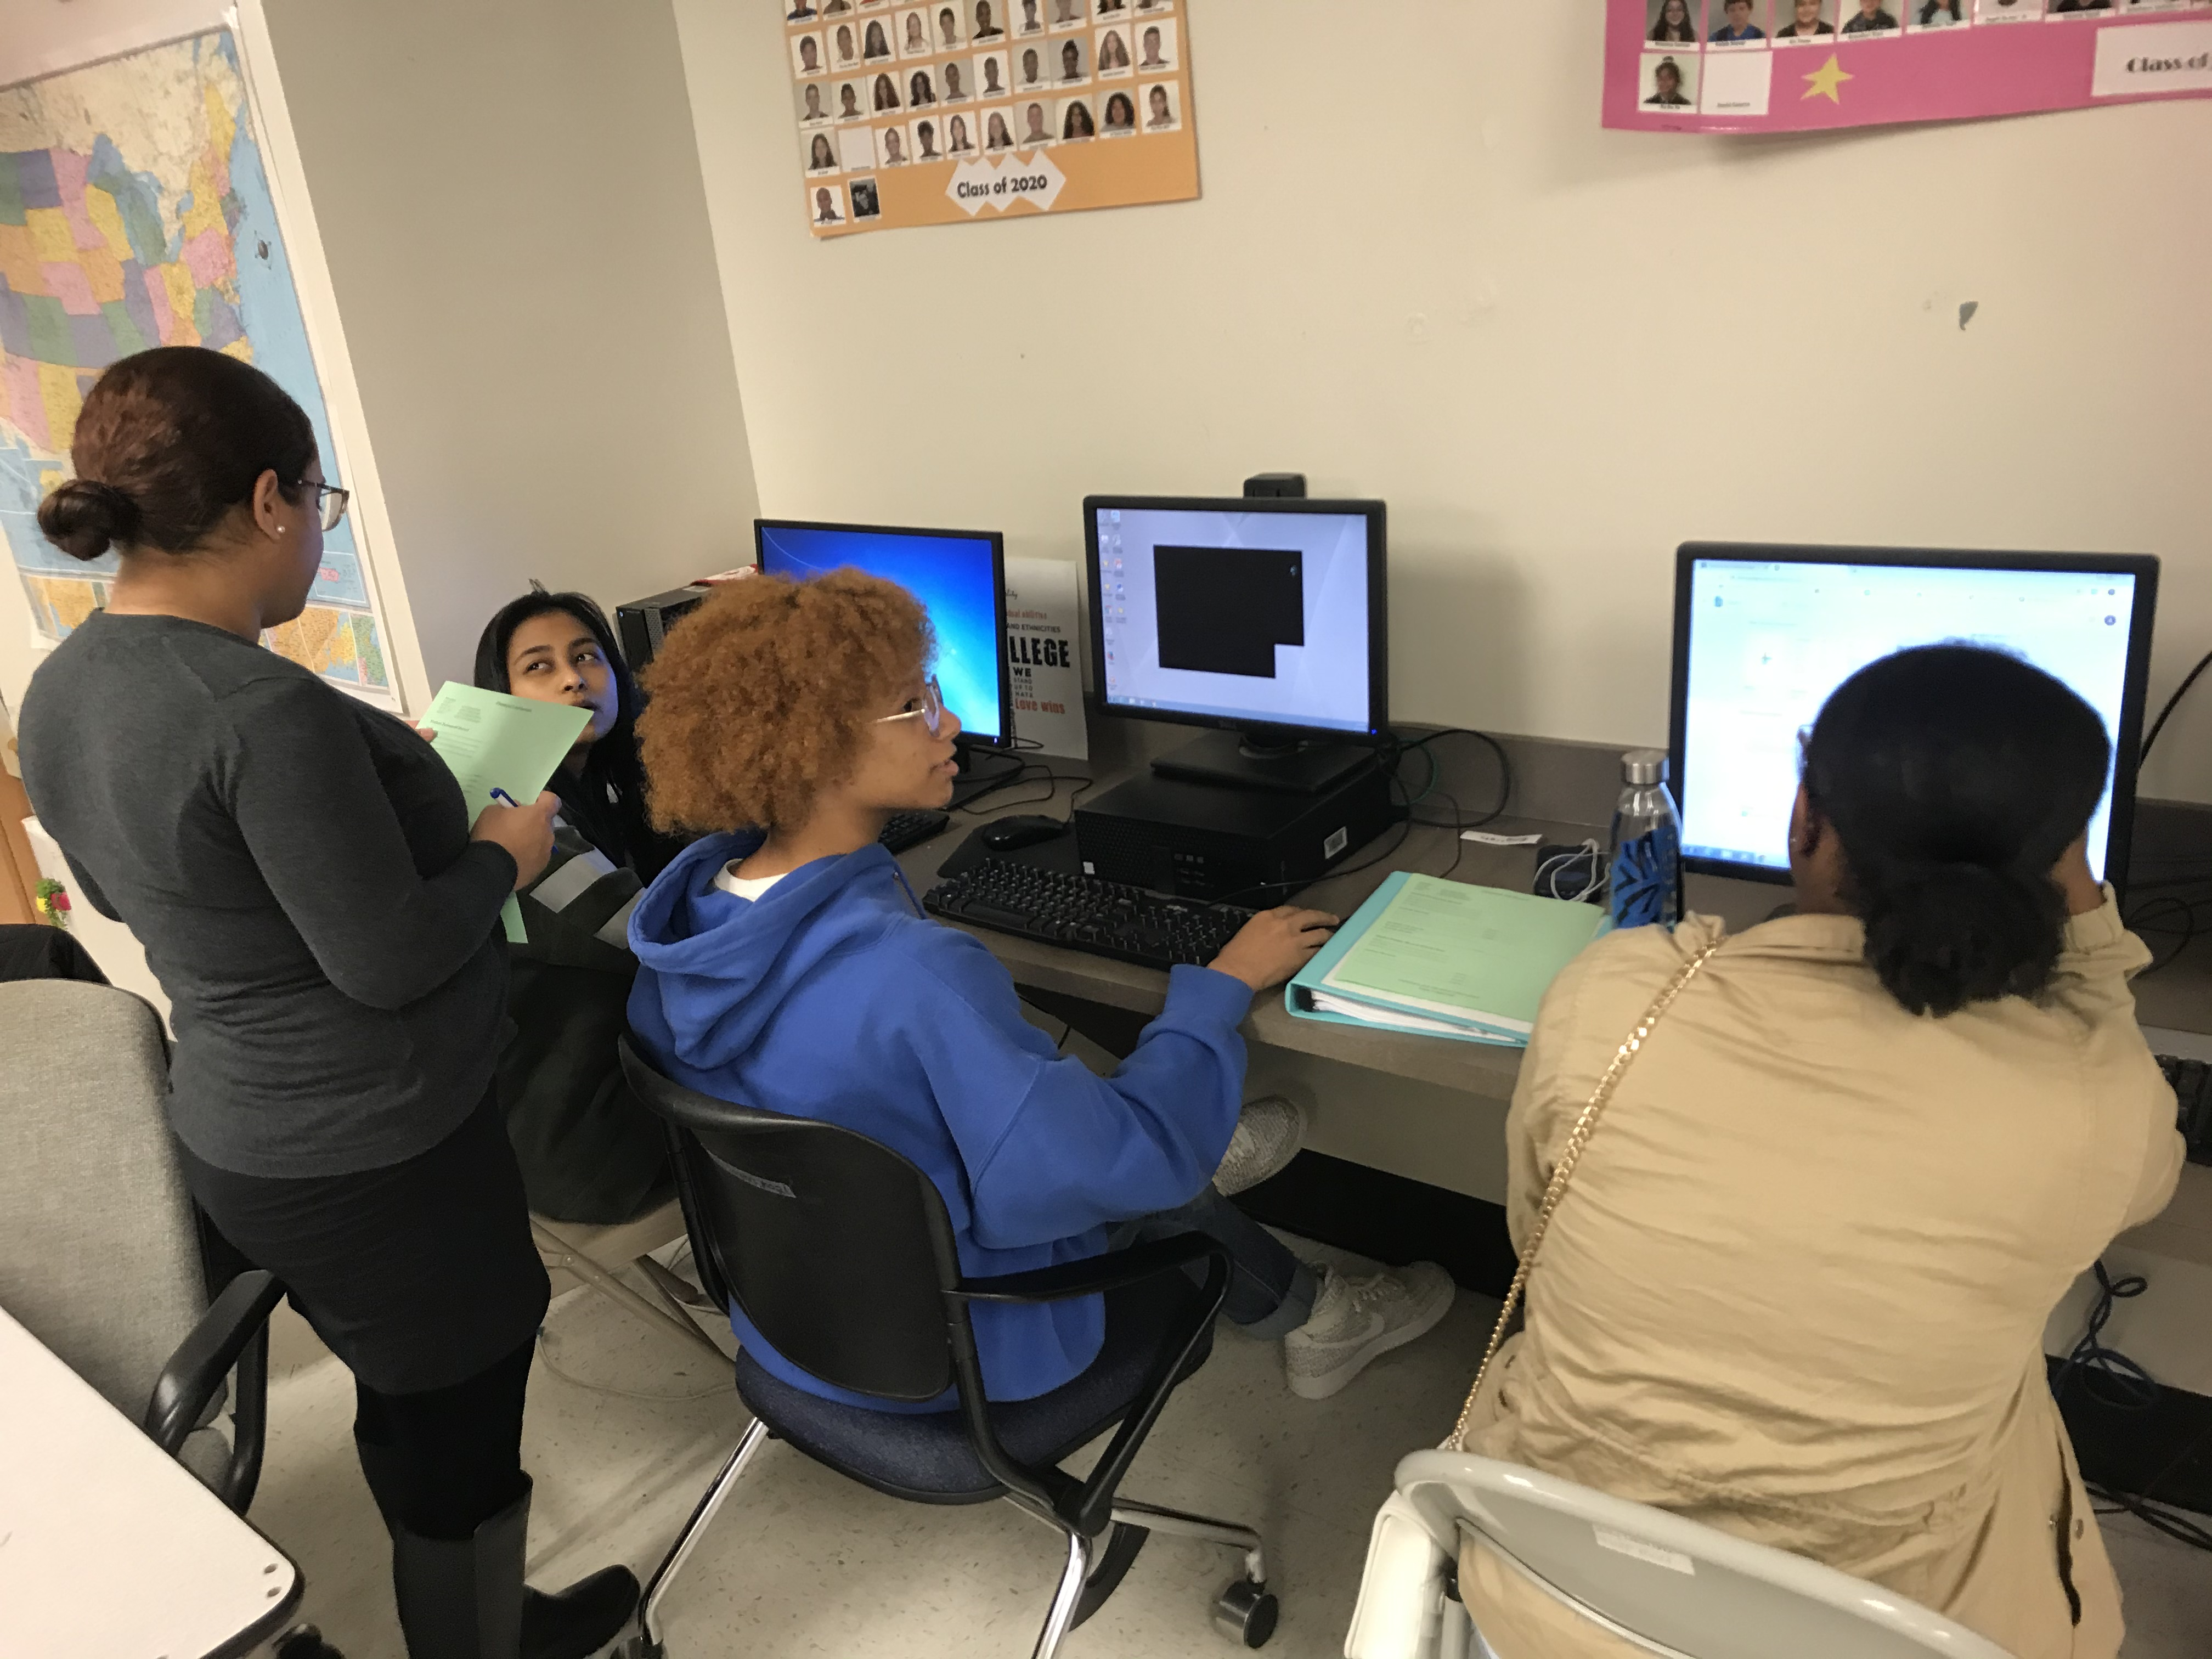 On Point For College visited our Young Scholars at Proctor to help them with financial aid applications